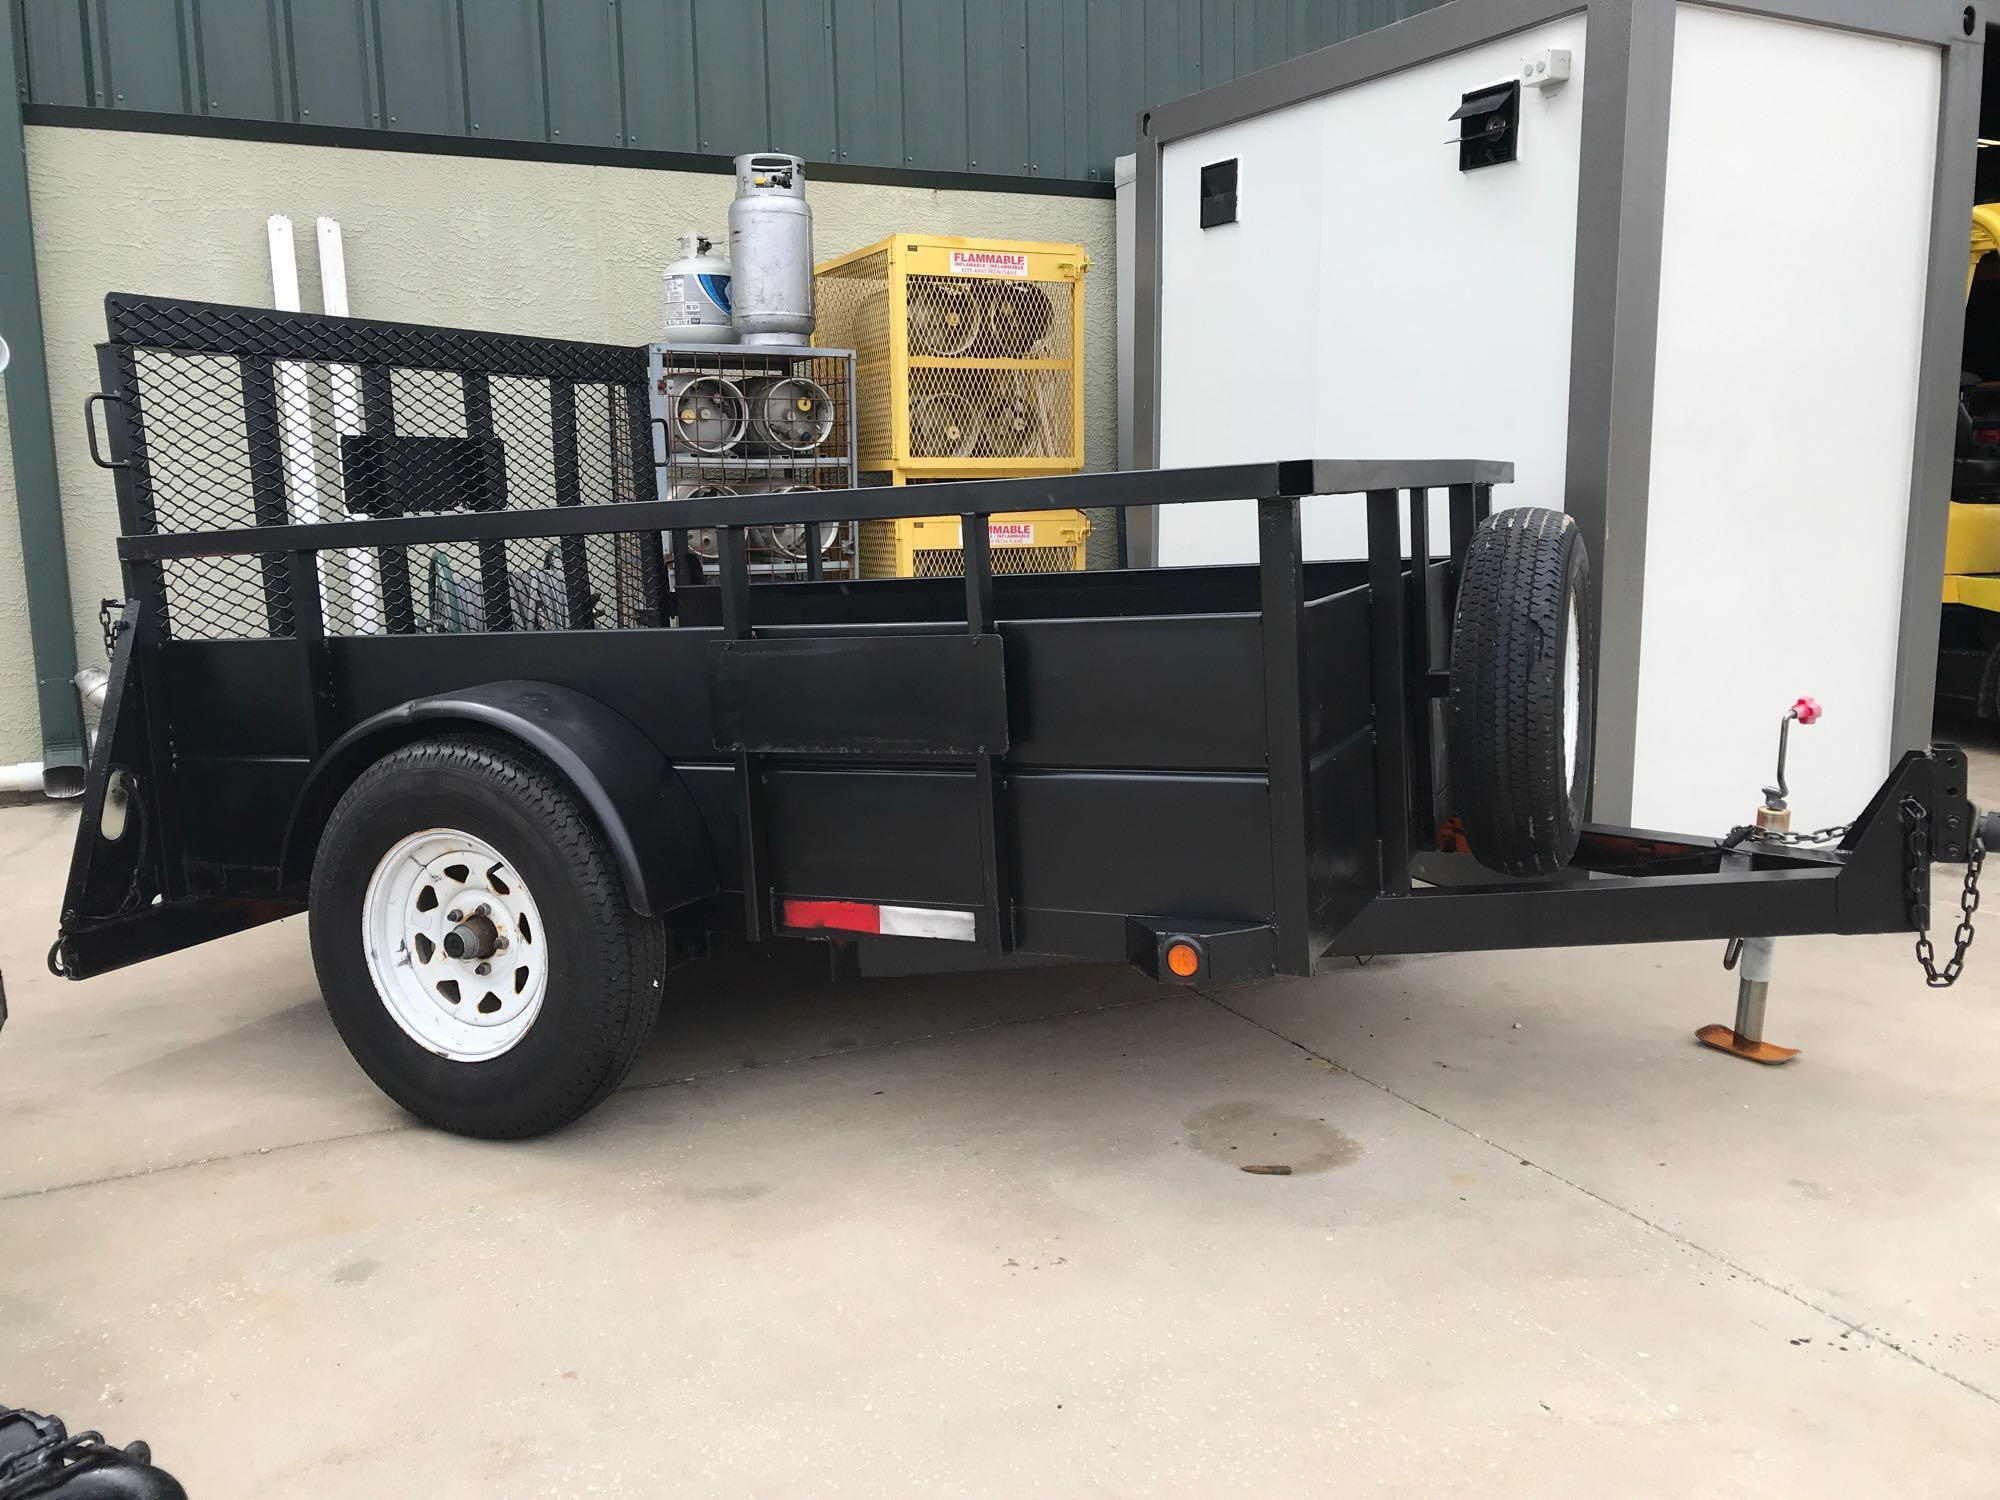 Lot 23 - 2013 ANDE HDLS68 EQUIPMENT TRAILER W/ FOLD DOWN RAMP